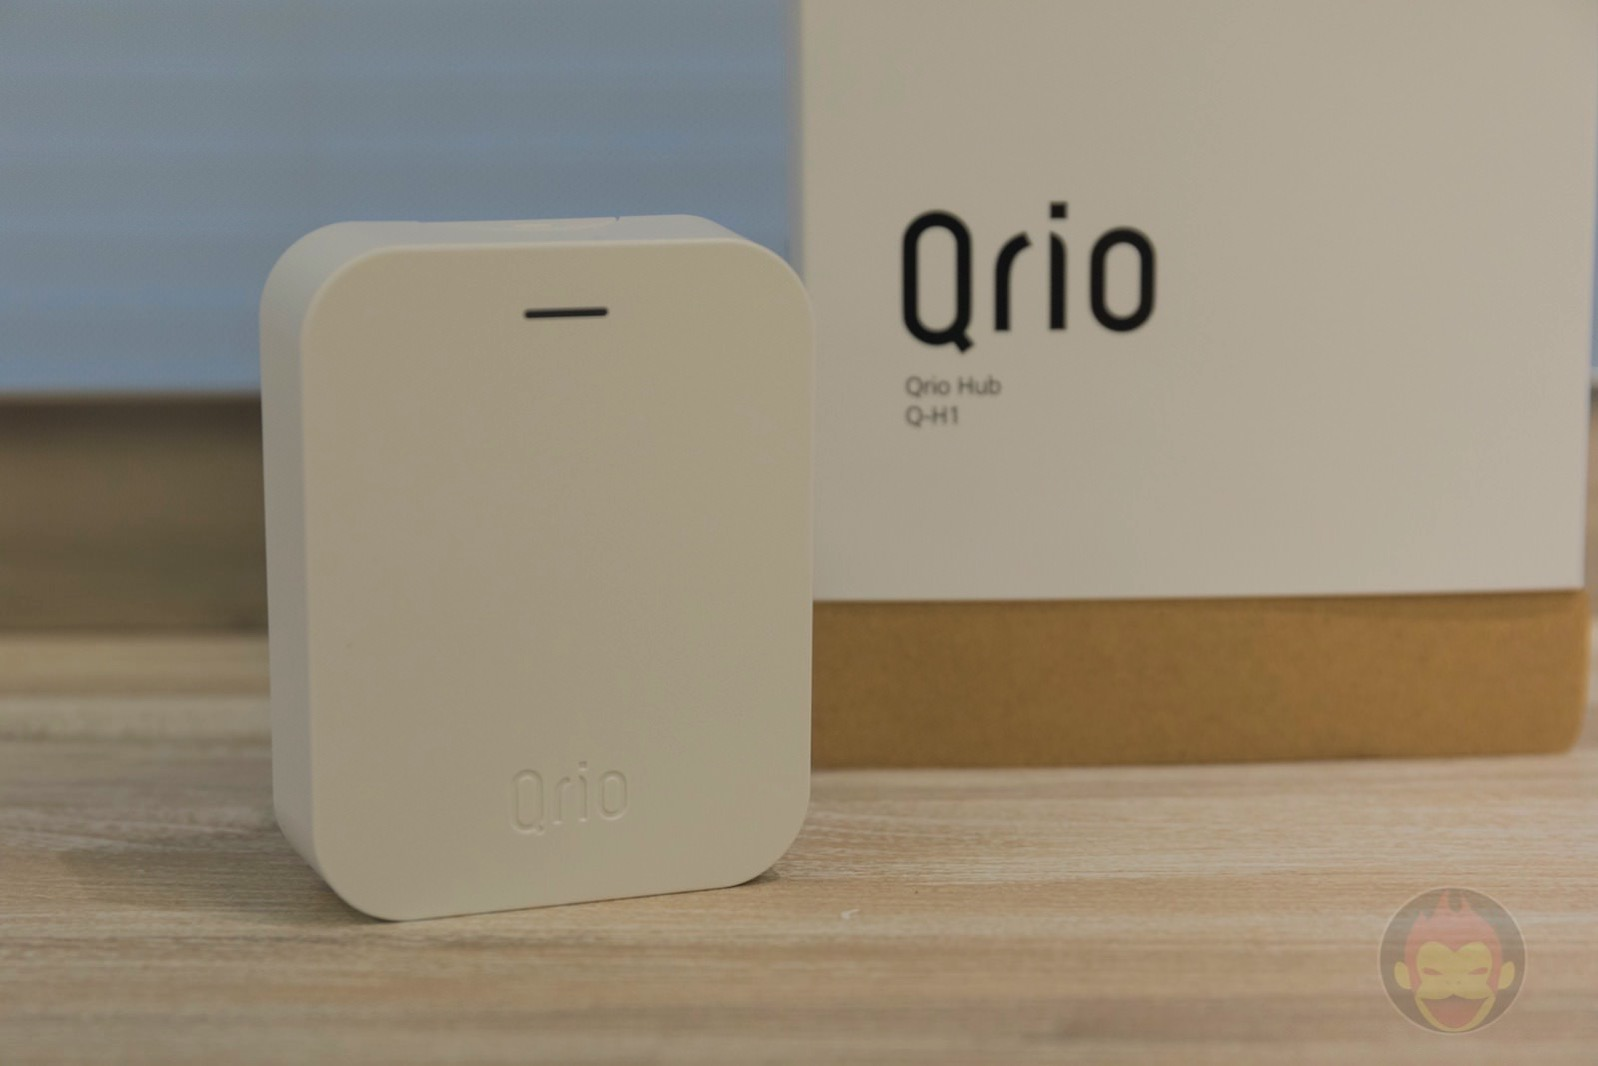 Qrio Smart Lock Photos 09